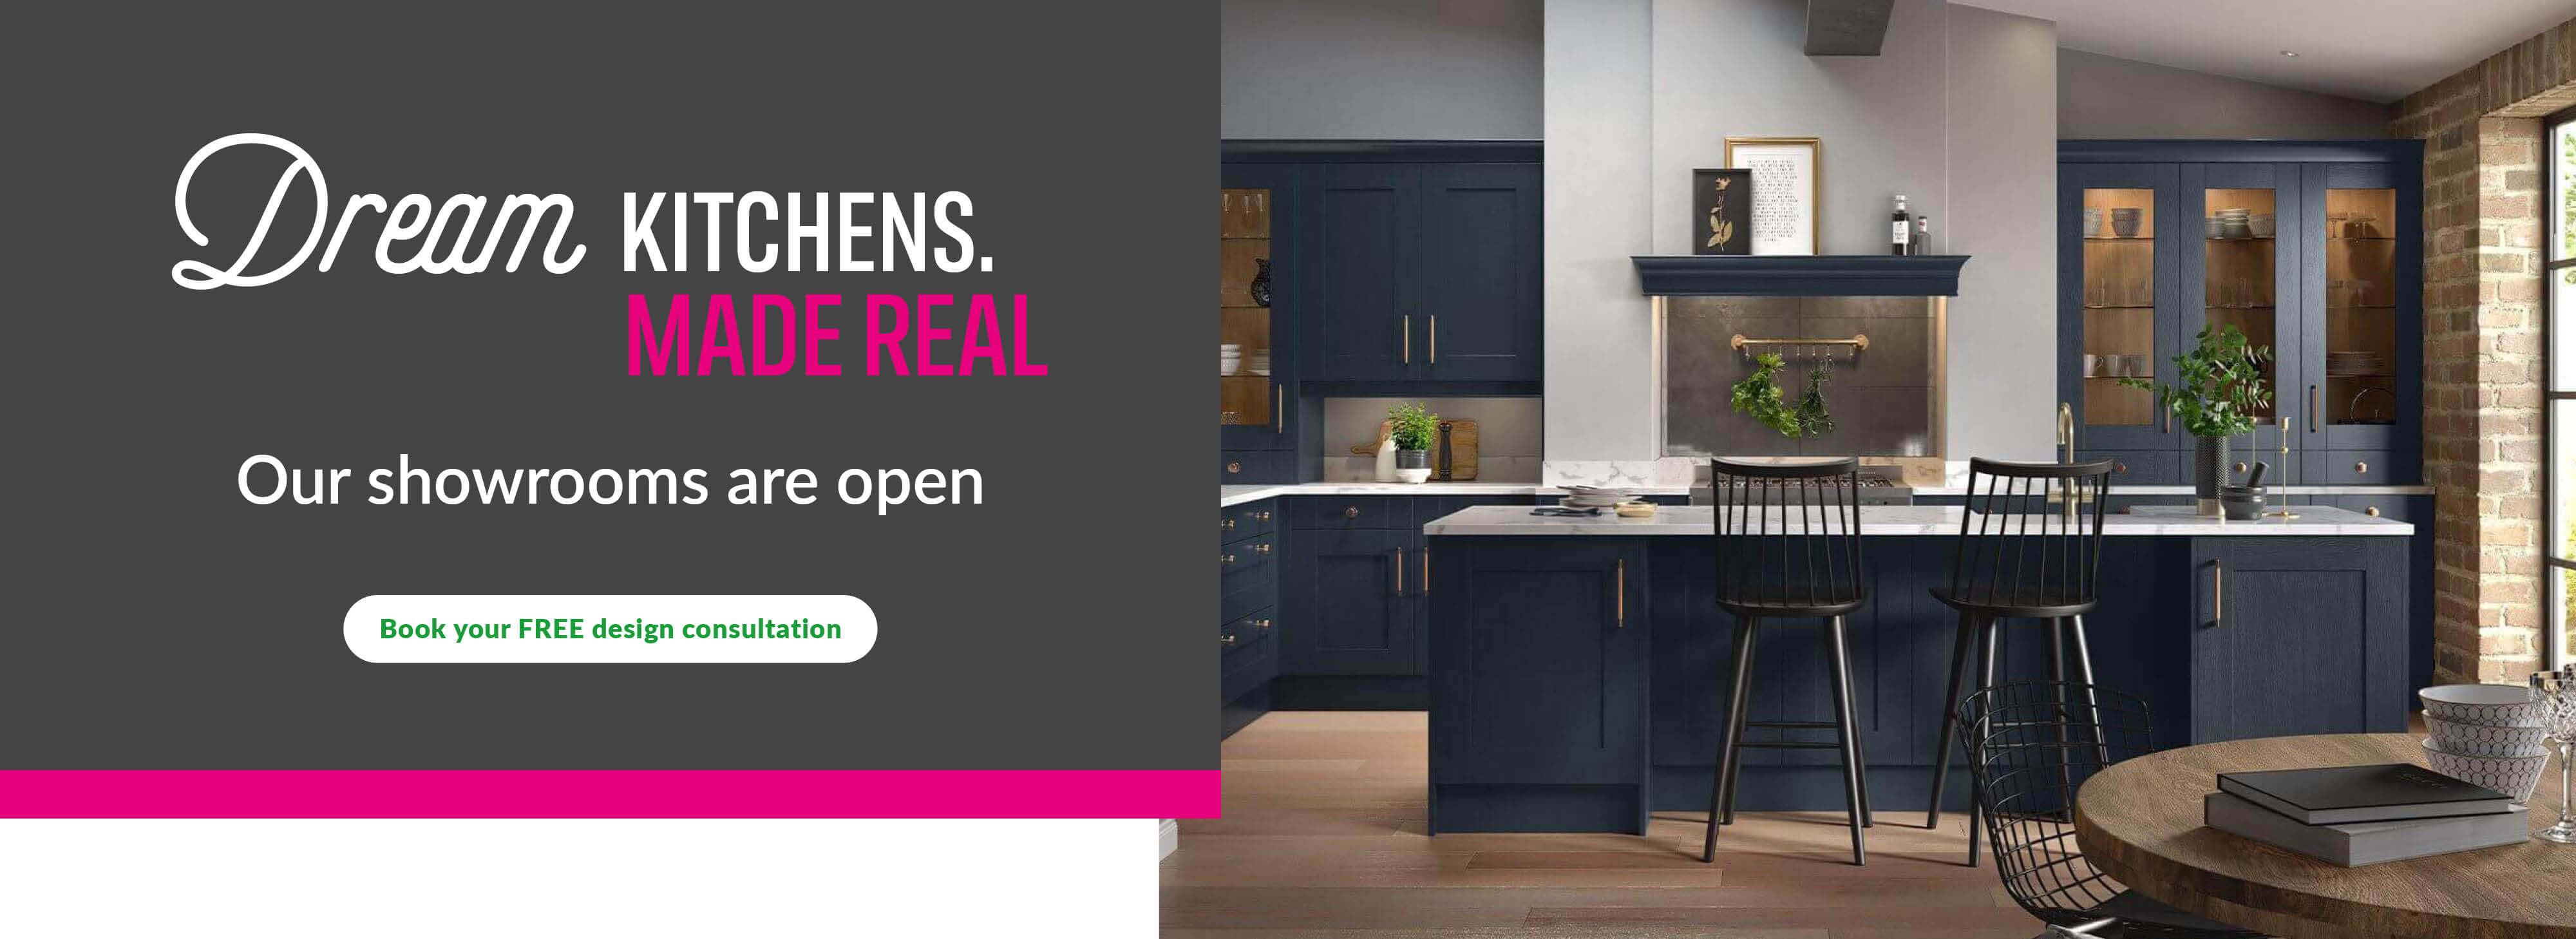 Dream Kitchens. Real Savings. Get 50% off when you kick off your kitchen renovation. Half price, plus 15% off, plus a free dishwasher